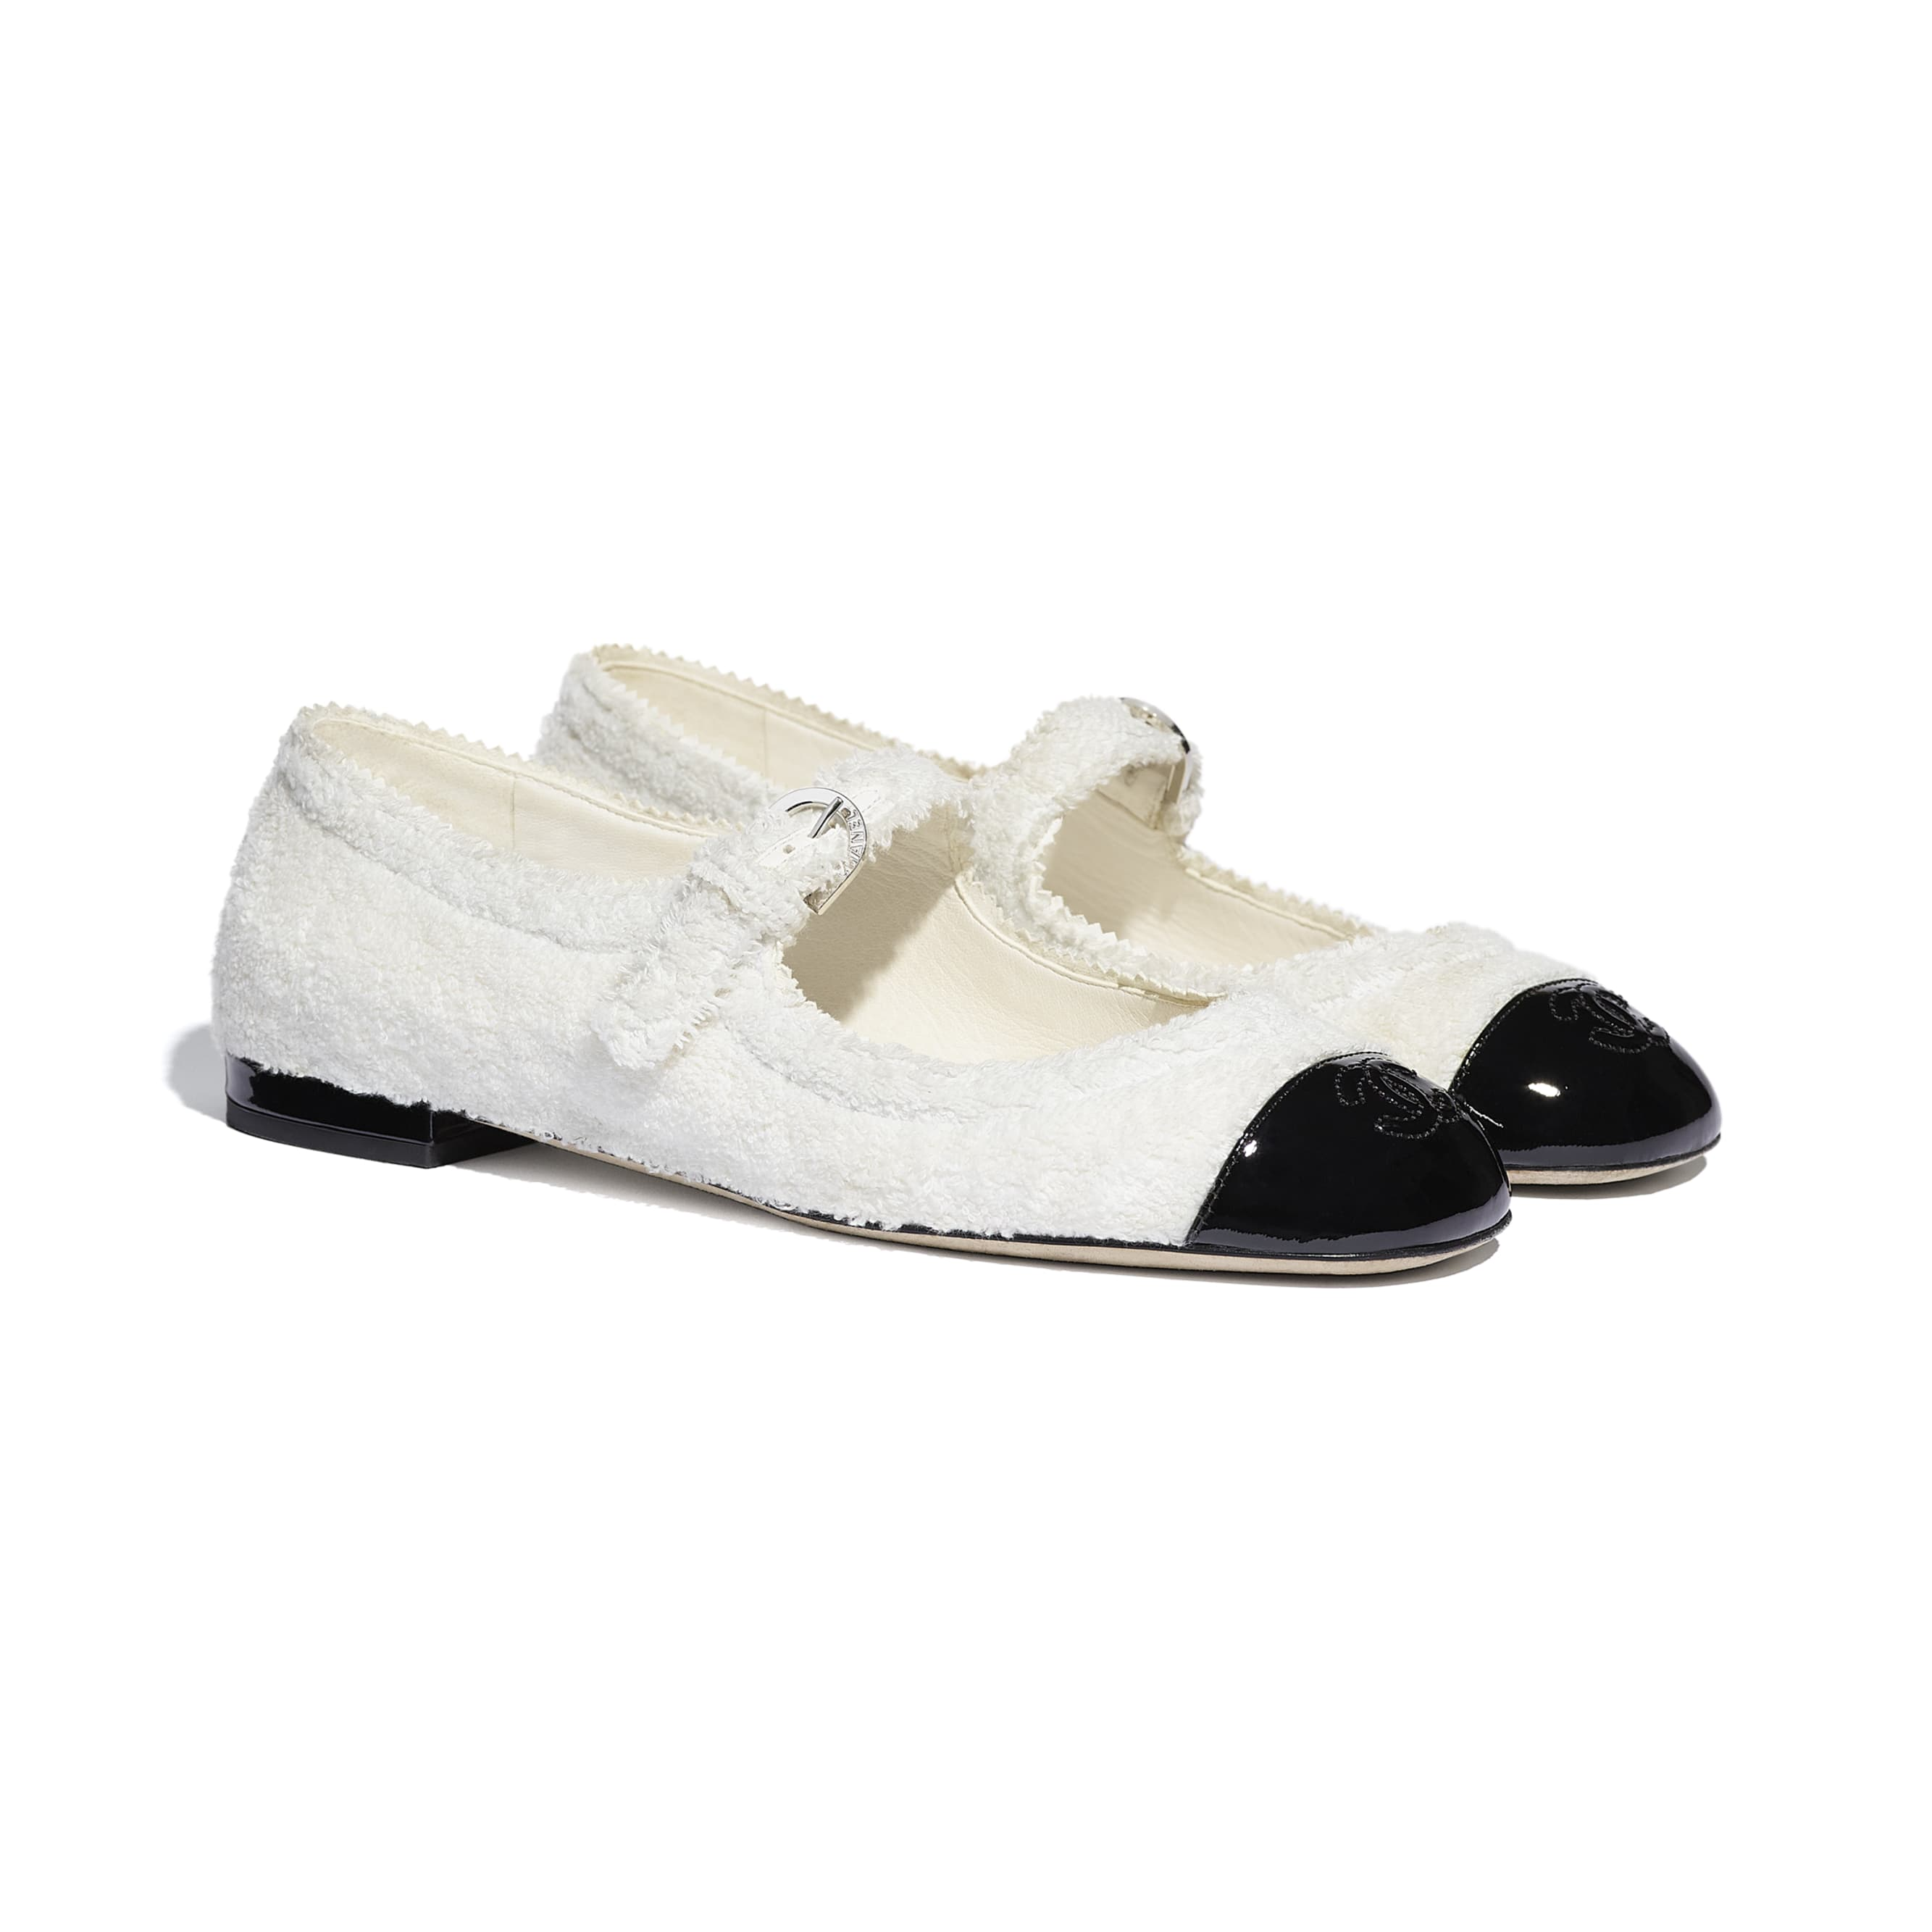 Mary Janes  - White & Black - Fabric & Patent Lambskin - CHANEL - Alternative view - see standard sized version